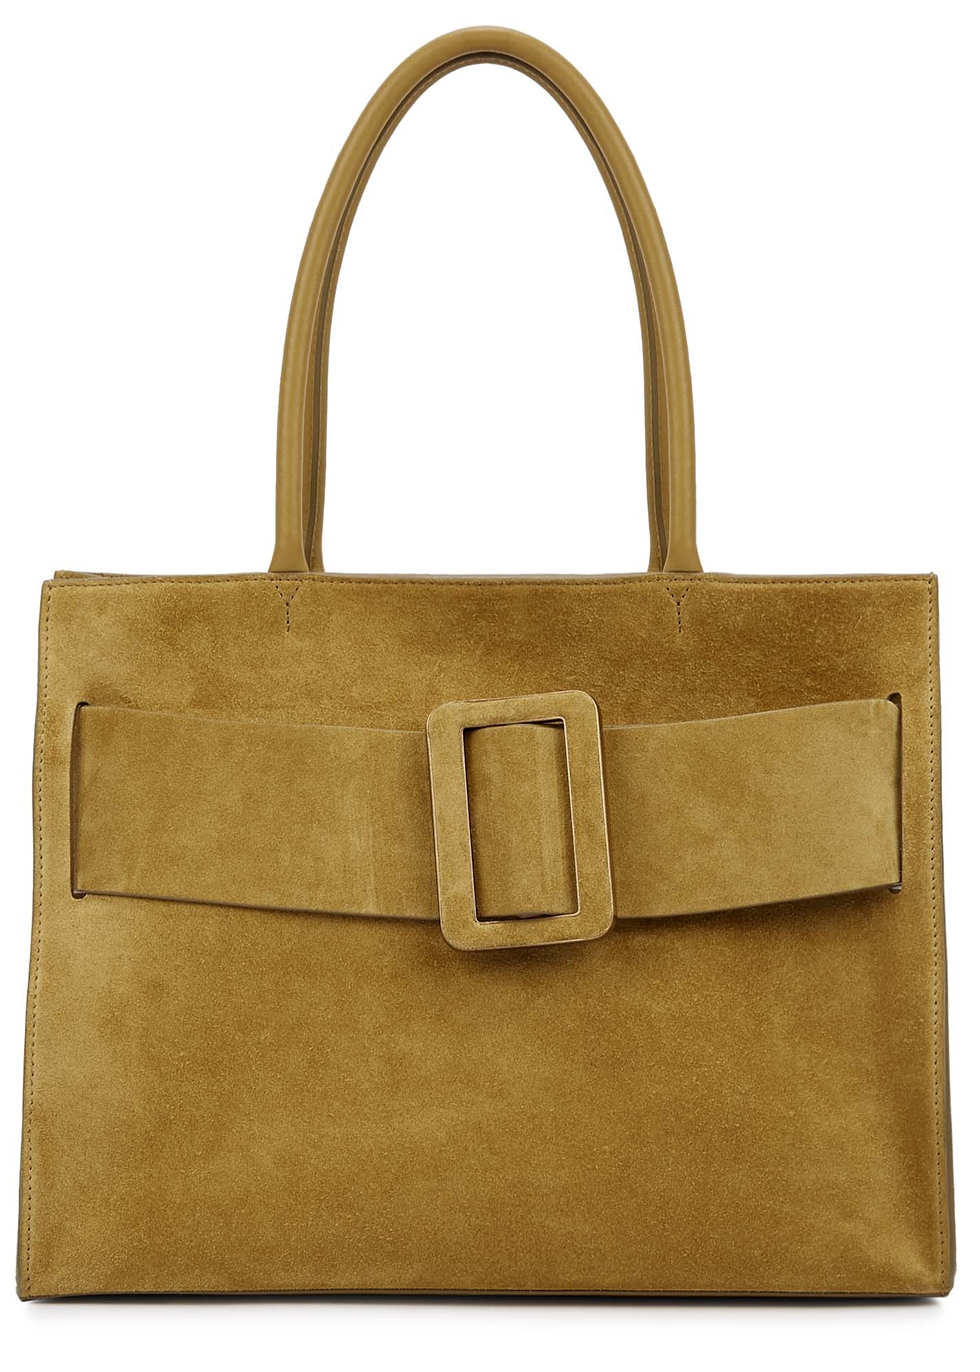 Bobby Soft suede tote